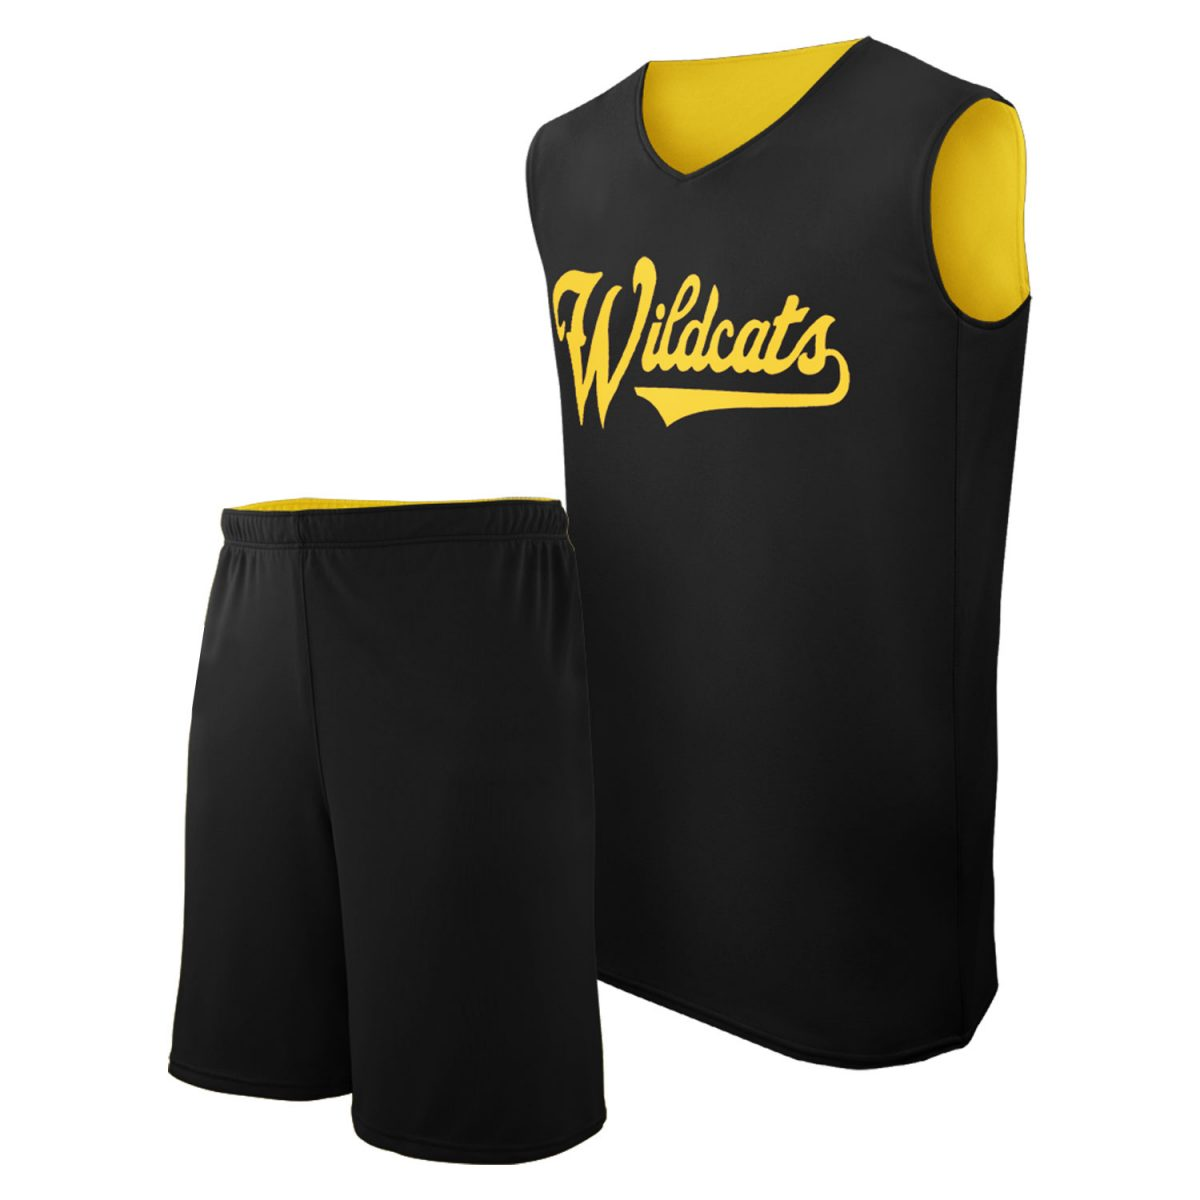 Boys Basketball Uniforms Manufacturers in Jalandhar in Bangladesh